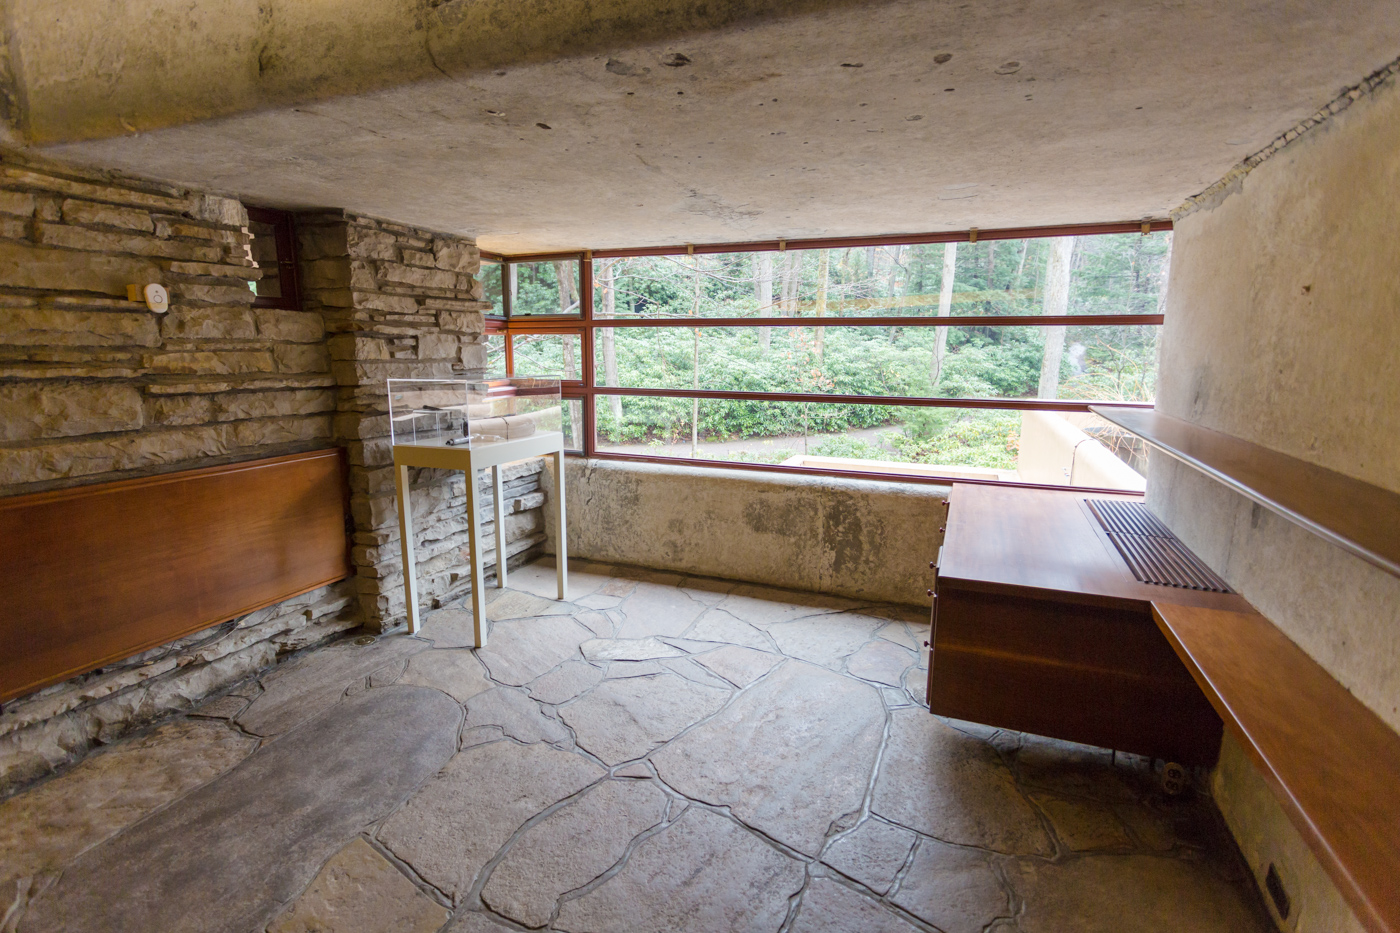 Bedroom under repair at Fallingwater